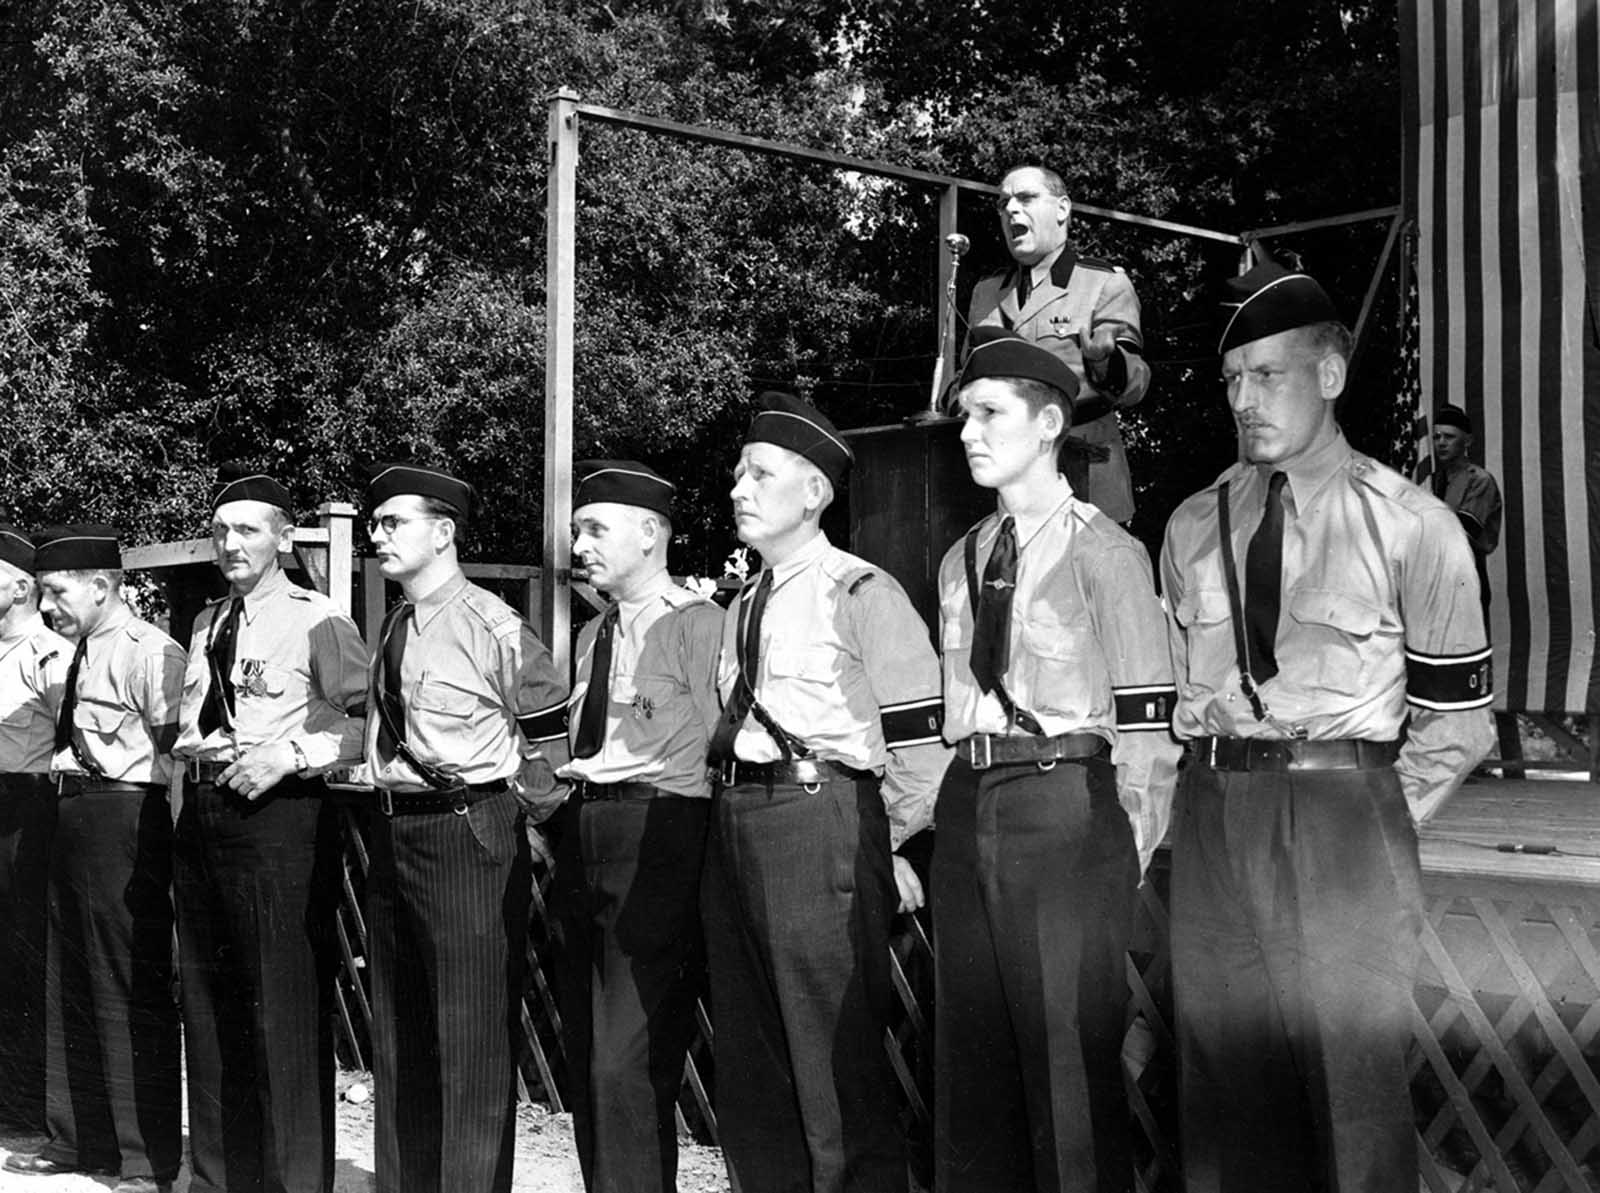 Members of the German-American Bund form a guard of honor before the speaker's stand as Fritz Kuhn, leader of the Bund, addresses a crowd at Hindenberg Park, La Crescenta, near Los Angeles, California, on April 30, 1939.